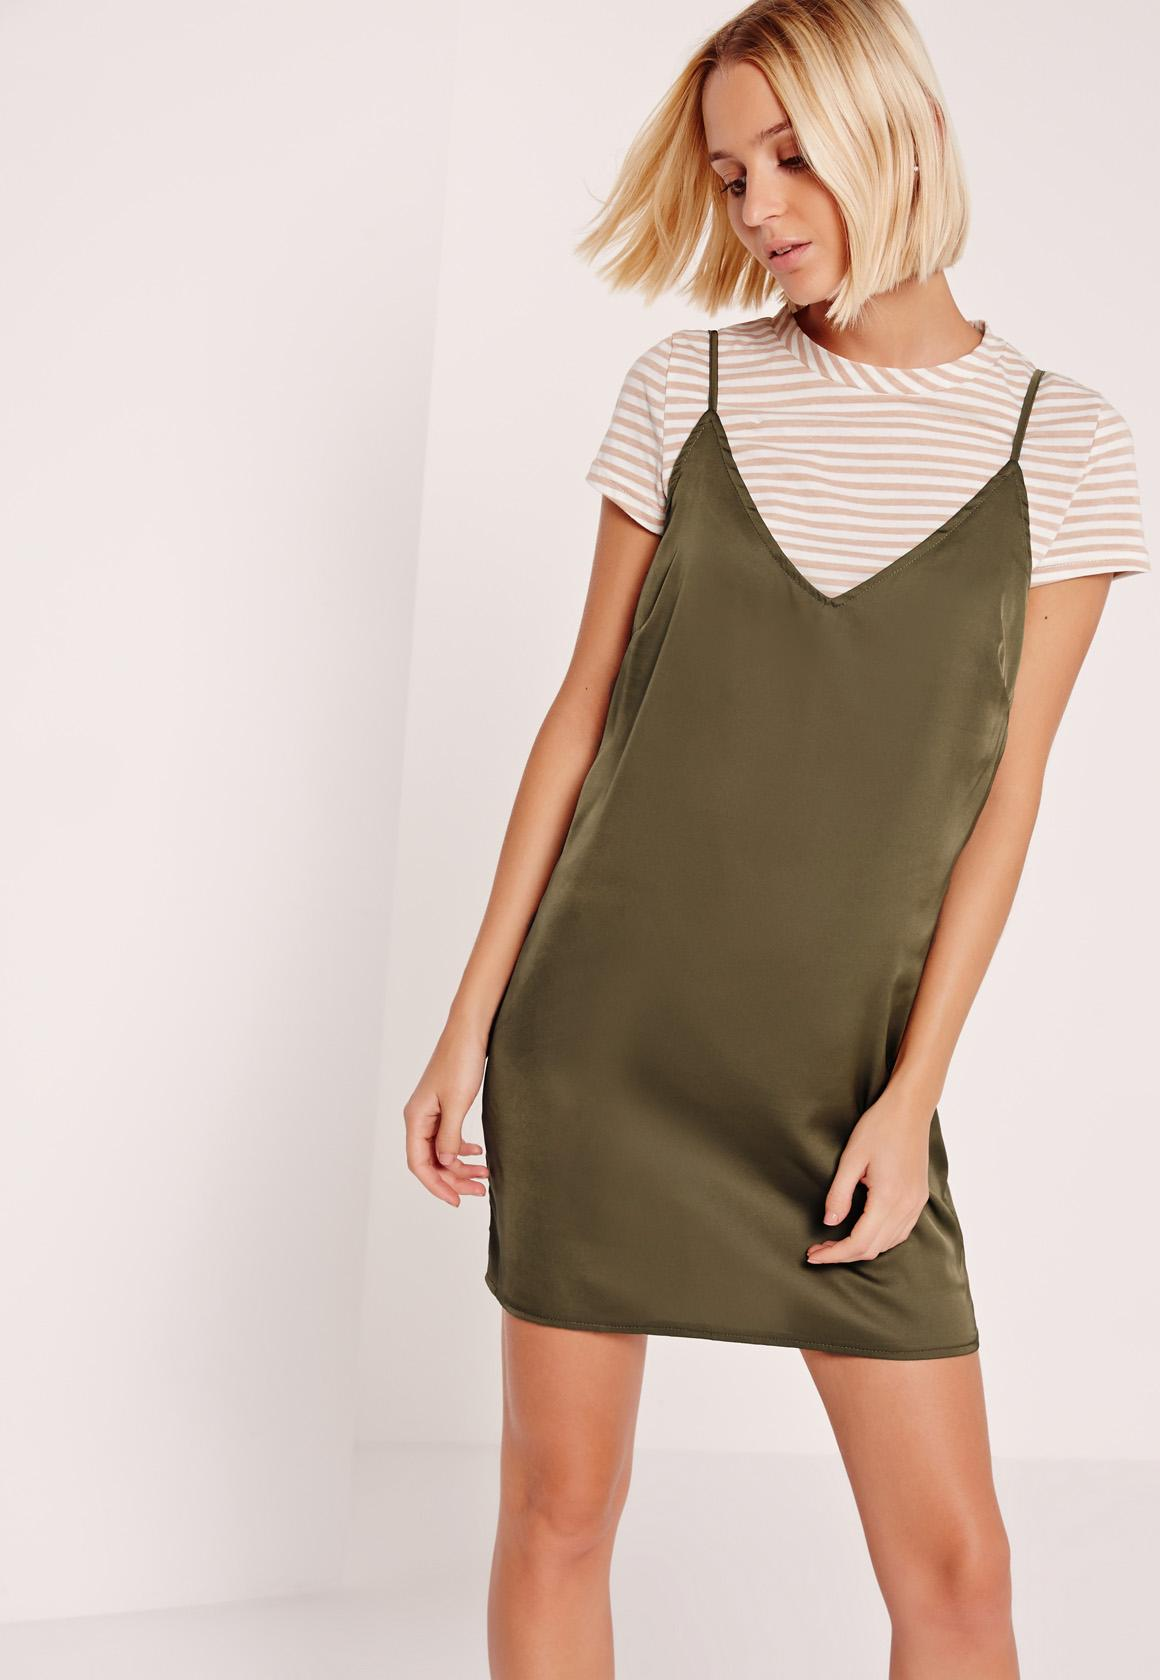 Stripe Khaki 2 in 1 Dresses